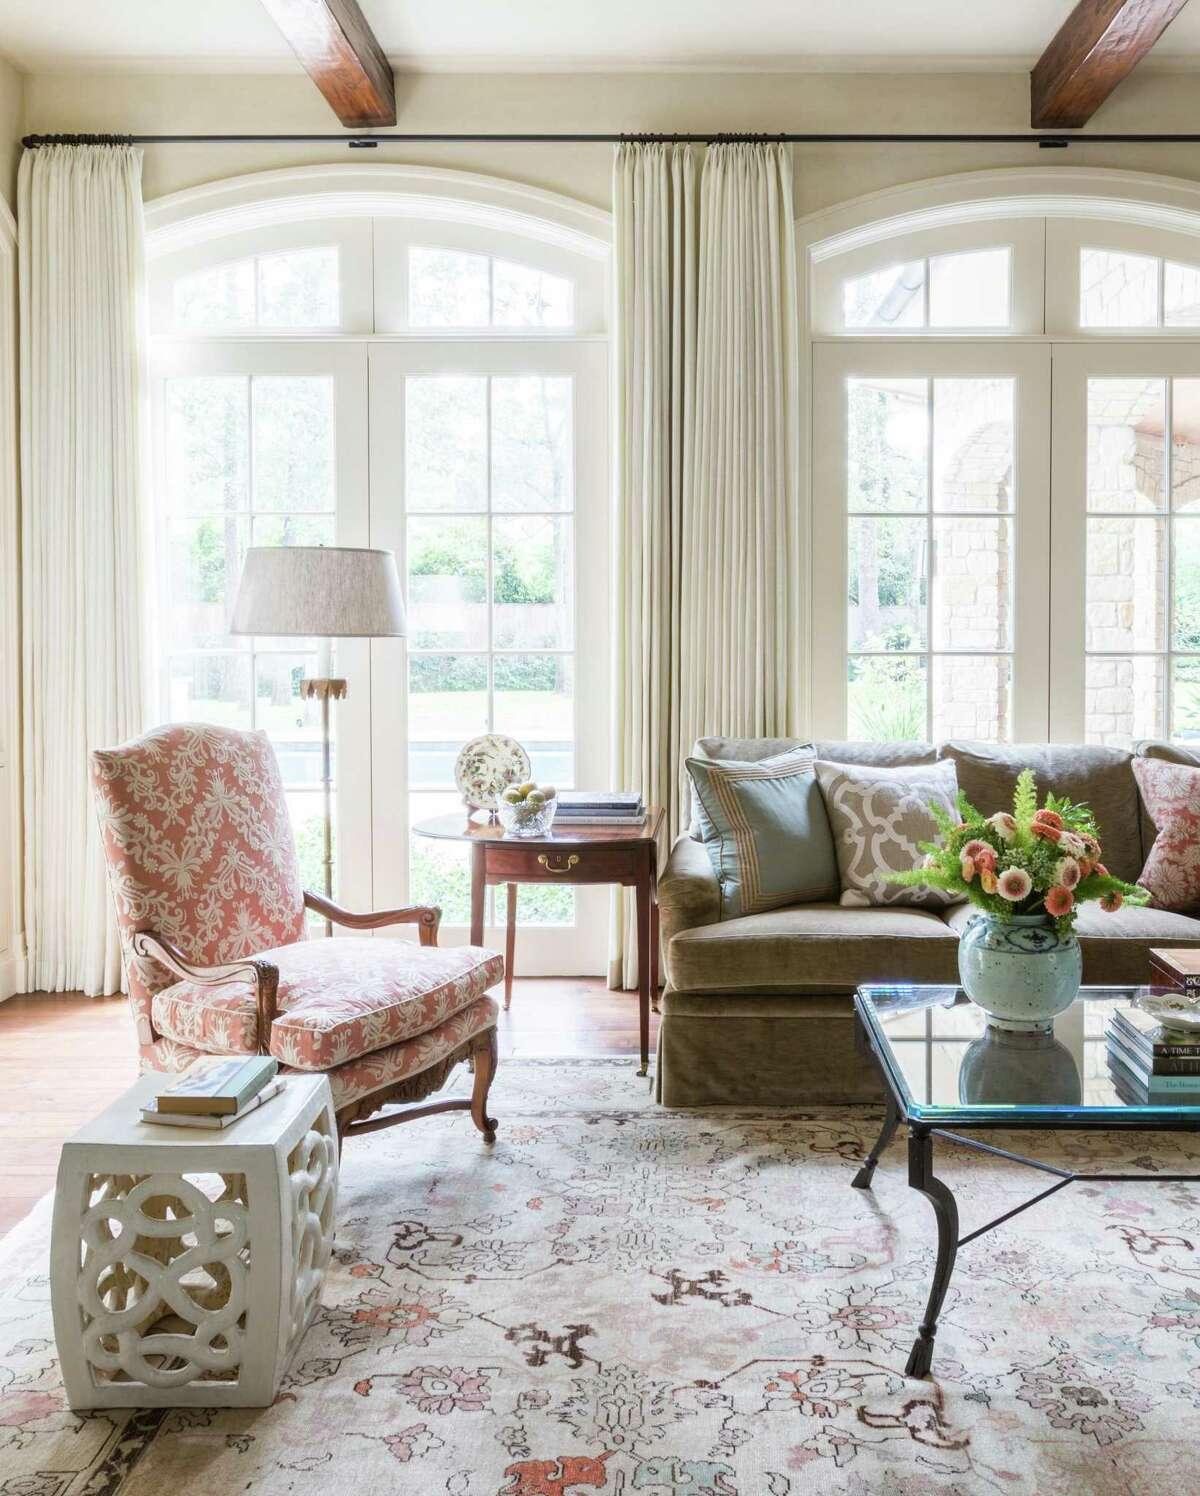 Off white draperies against off white walls help soften this large family room designed by Sarah Eilers of Lucas Eilers Design Associates.